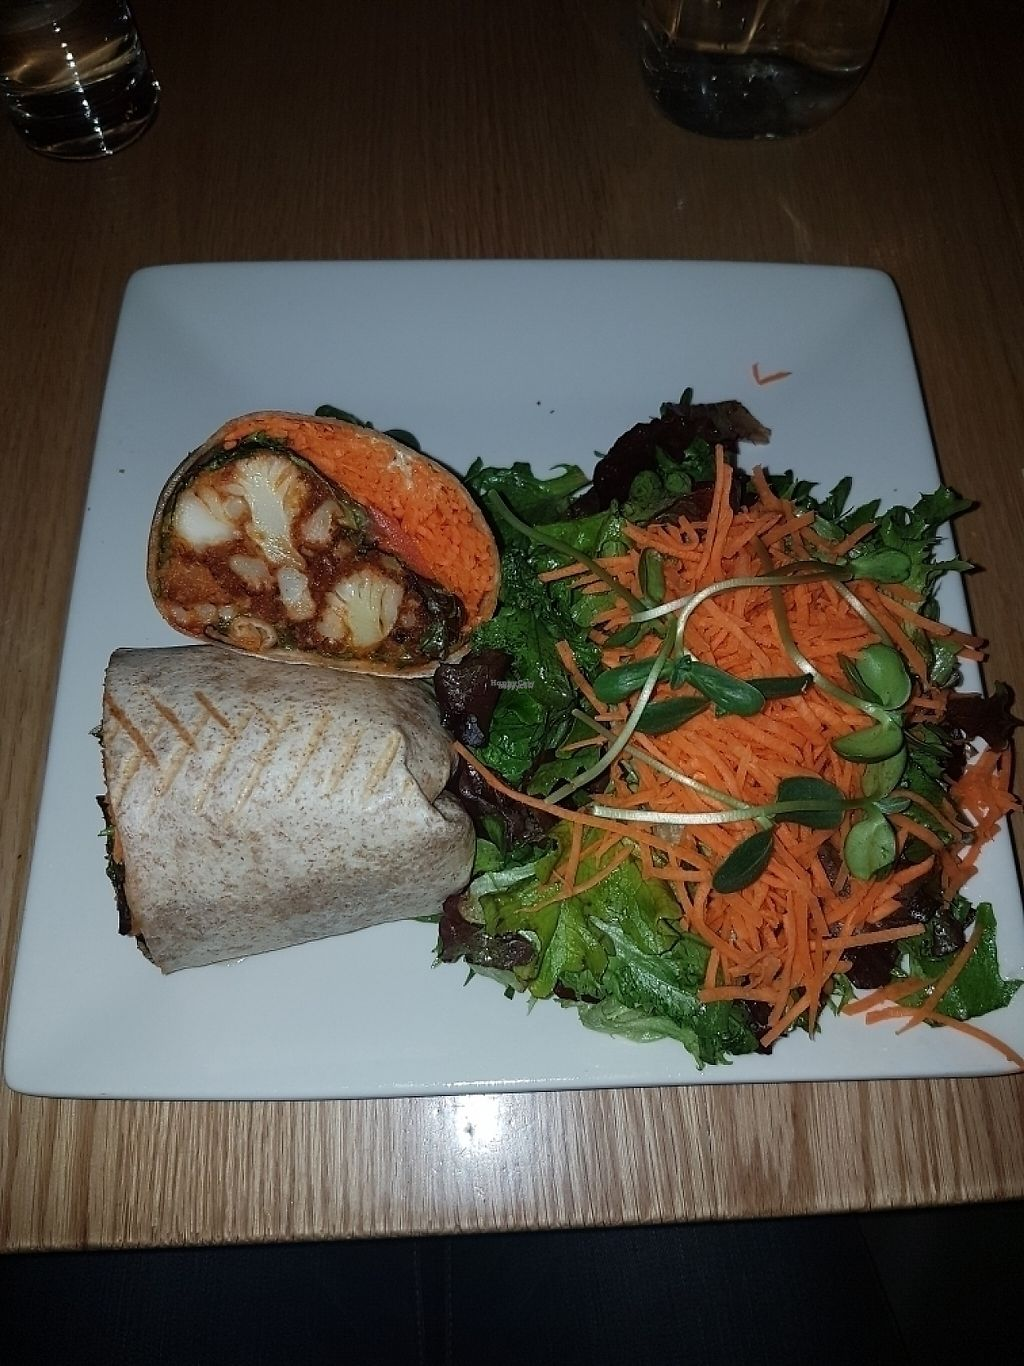 """Photo of Pure Kitchen - Richmond Rd  by <a href=""""/members/profile/Veganchick11"""">Veganchick11</a> <br/>deep fried cauliflower wrap <br/> April 29, 2017  - <a href='/contact/abuse/image/53042/253887'>Report</a>"""